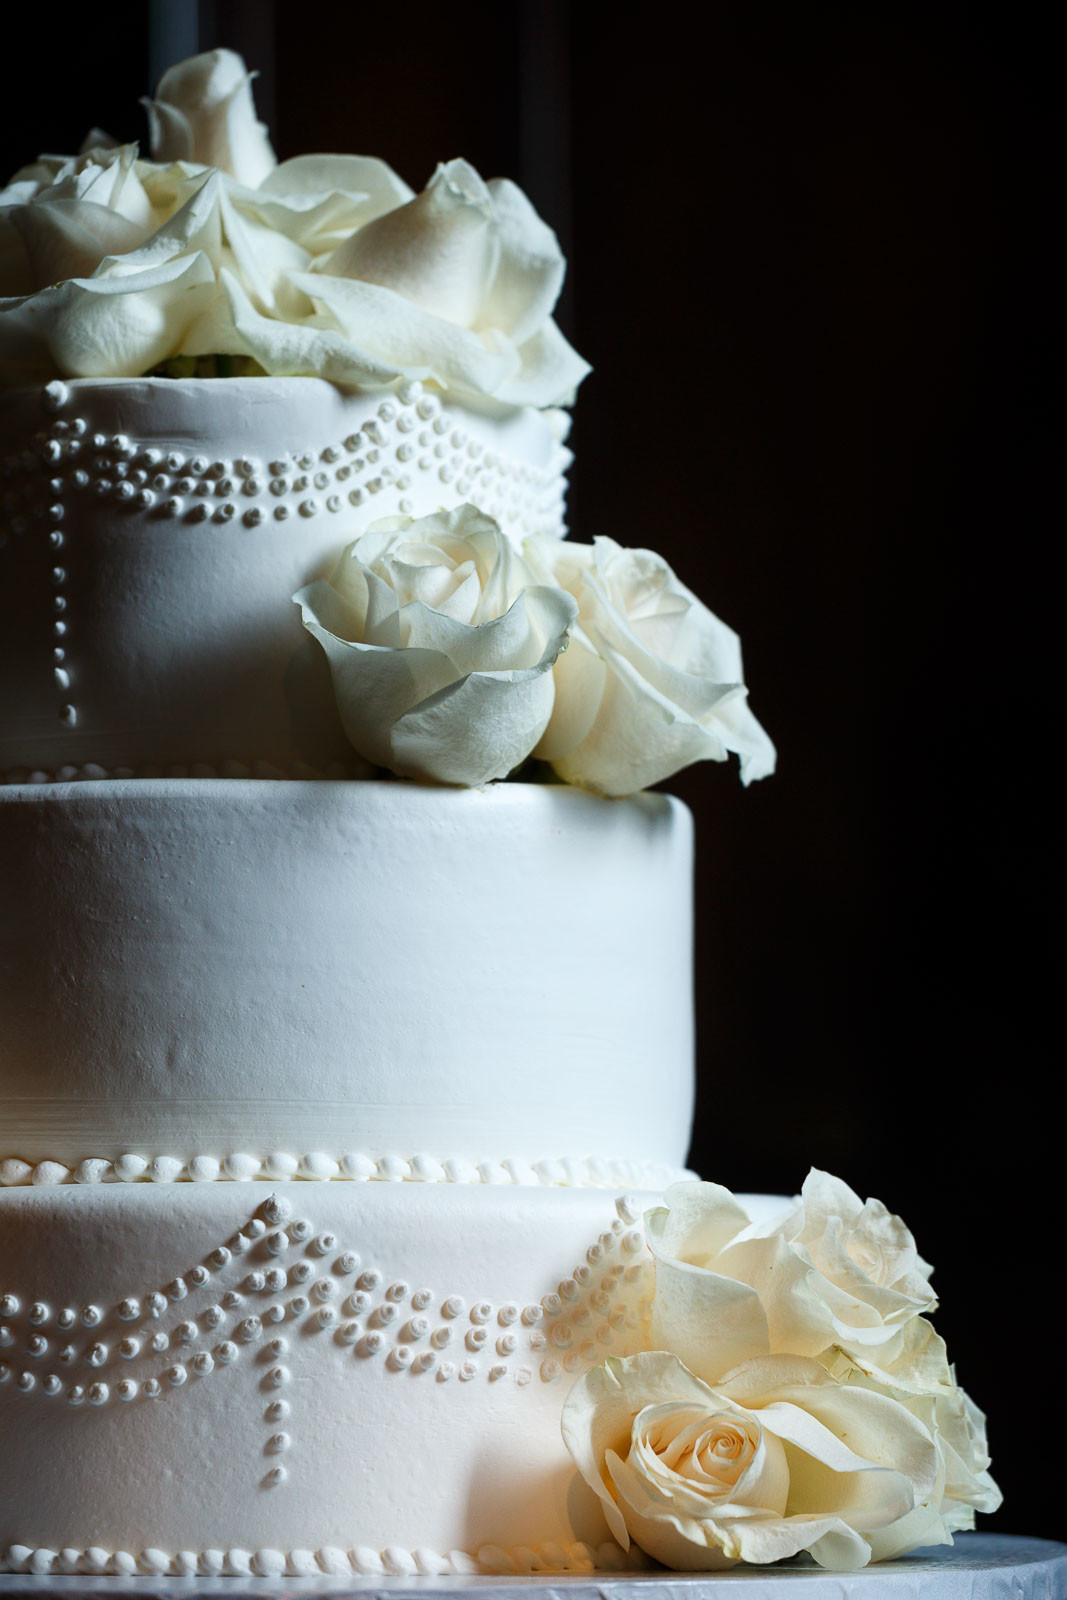 Featured Wedding Cakes -DIY Wedding Cakes - Austin Wedding Photographers -Alicia and Collin Wedding - Porto's Bakery